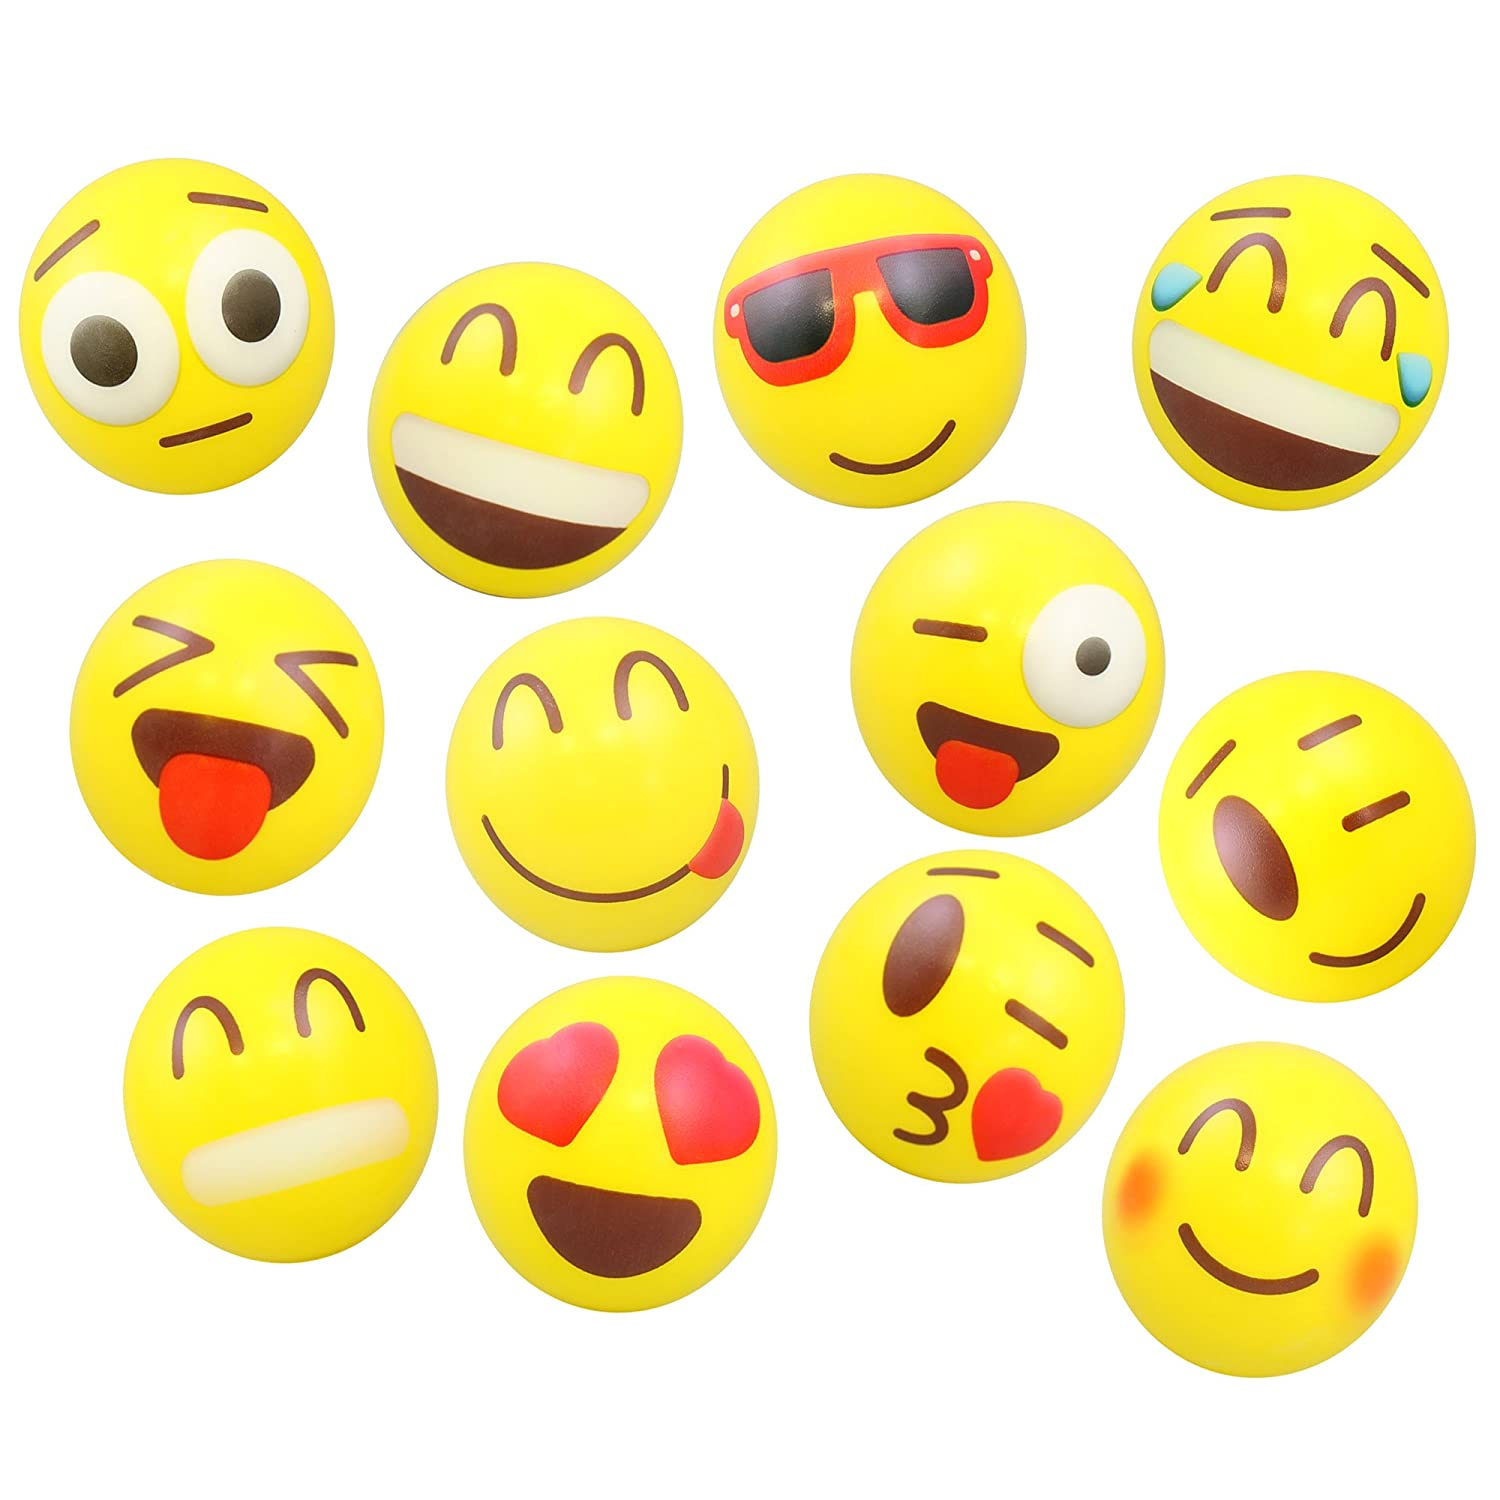 24 Colorful Emoji Stress Balls - Squishy, Squeezable Fidget Toy for Kids - High-Quality Materials for Lasting Use - Cool Squeeze Balls Improve Anxiety and ADHD - Great Party Favors or Classroom Toys Totem World